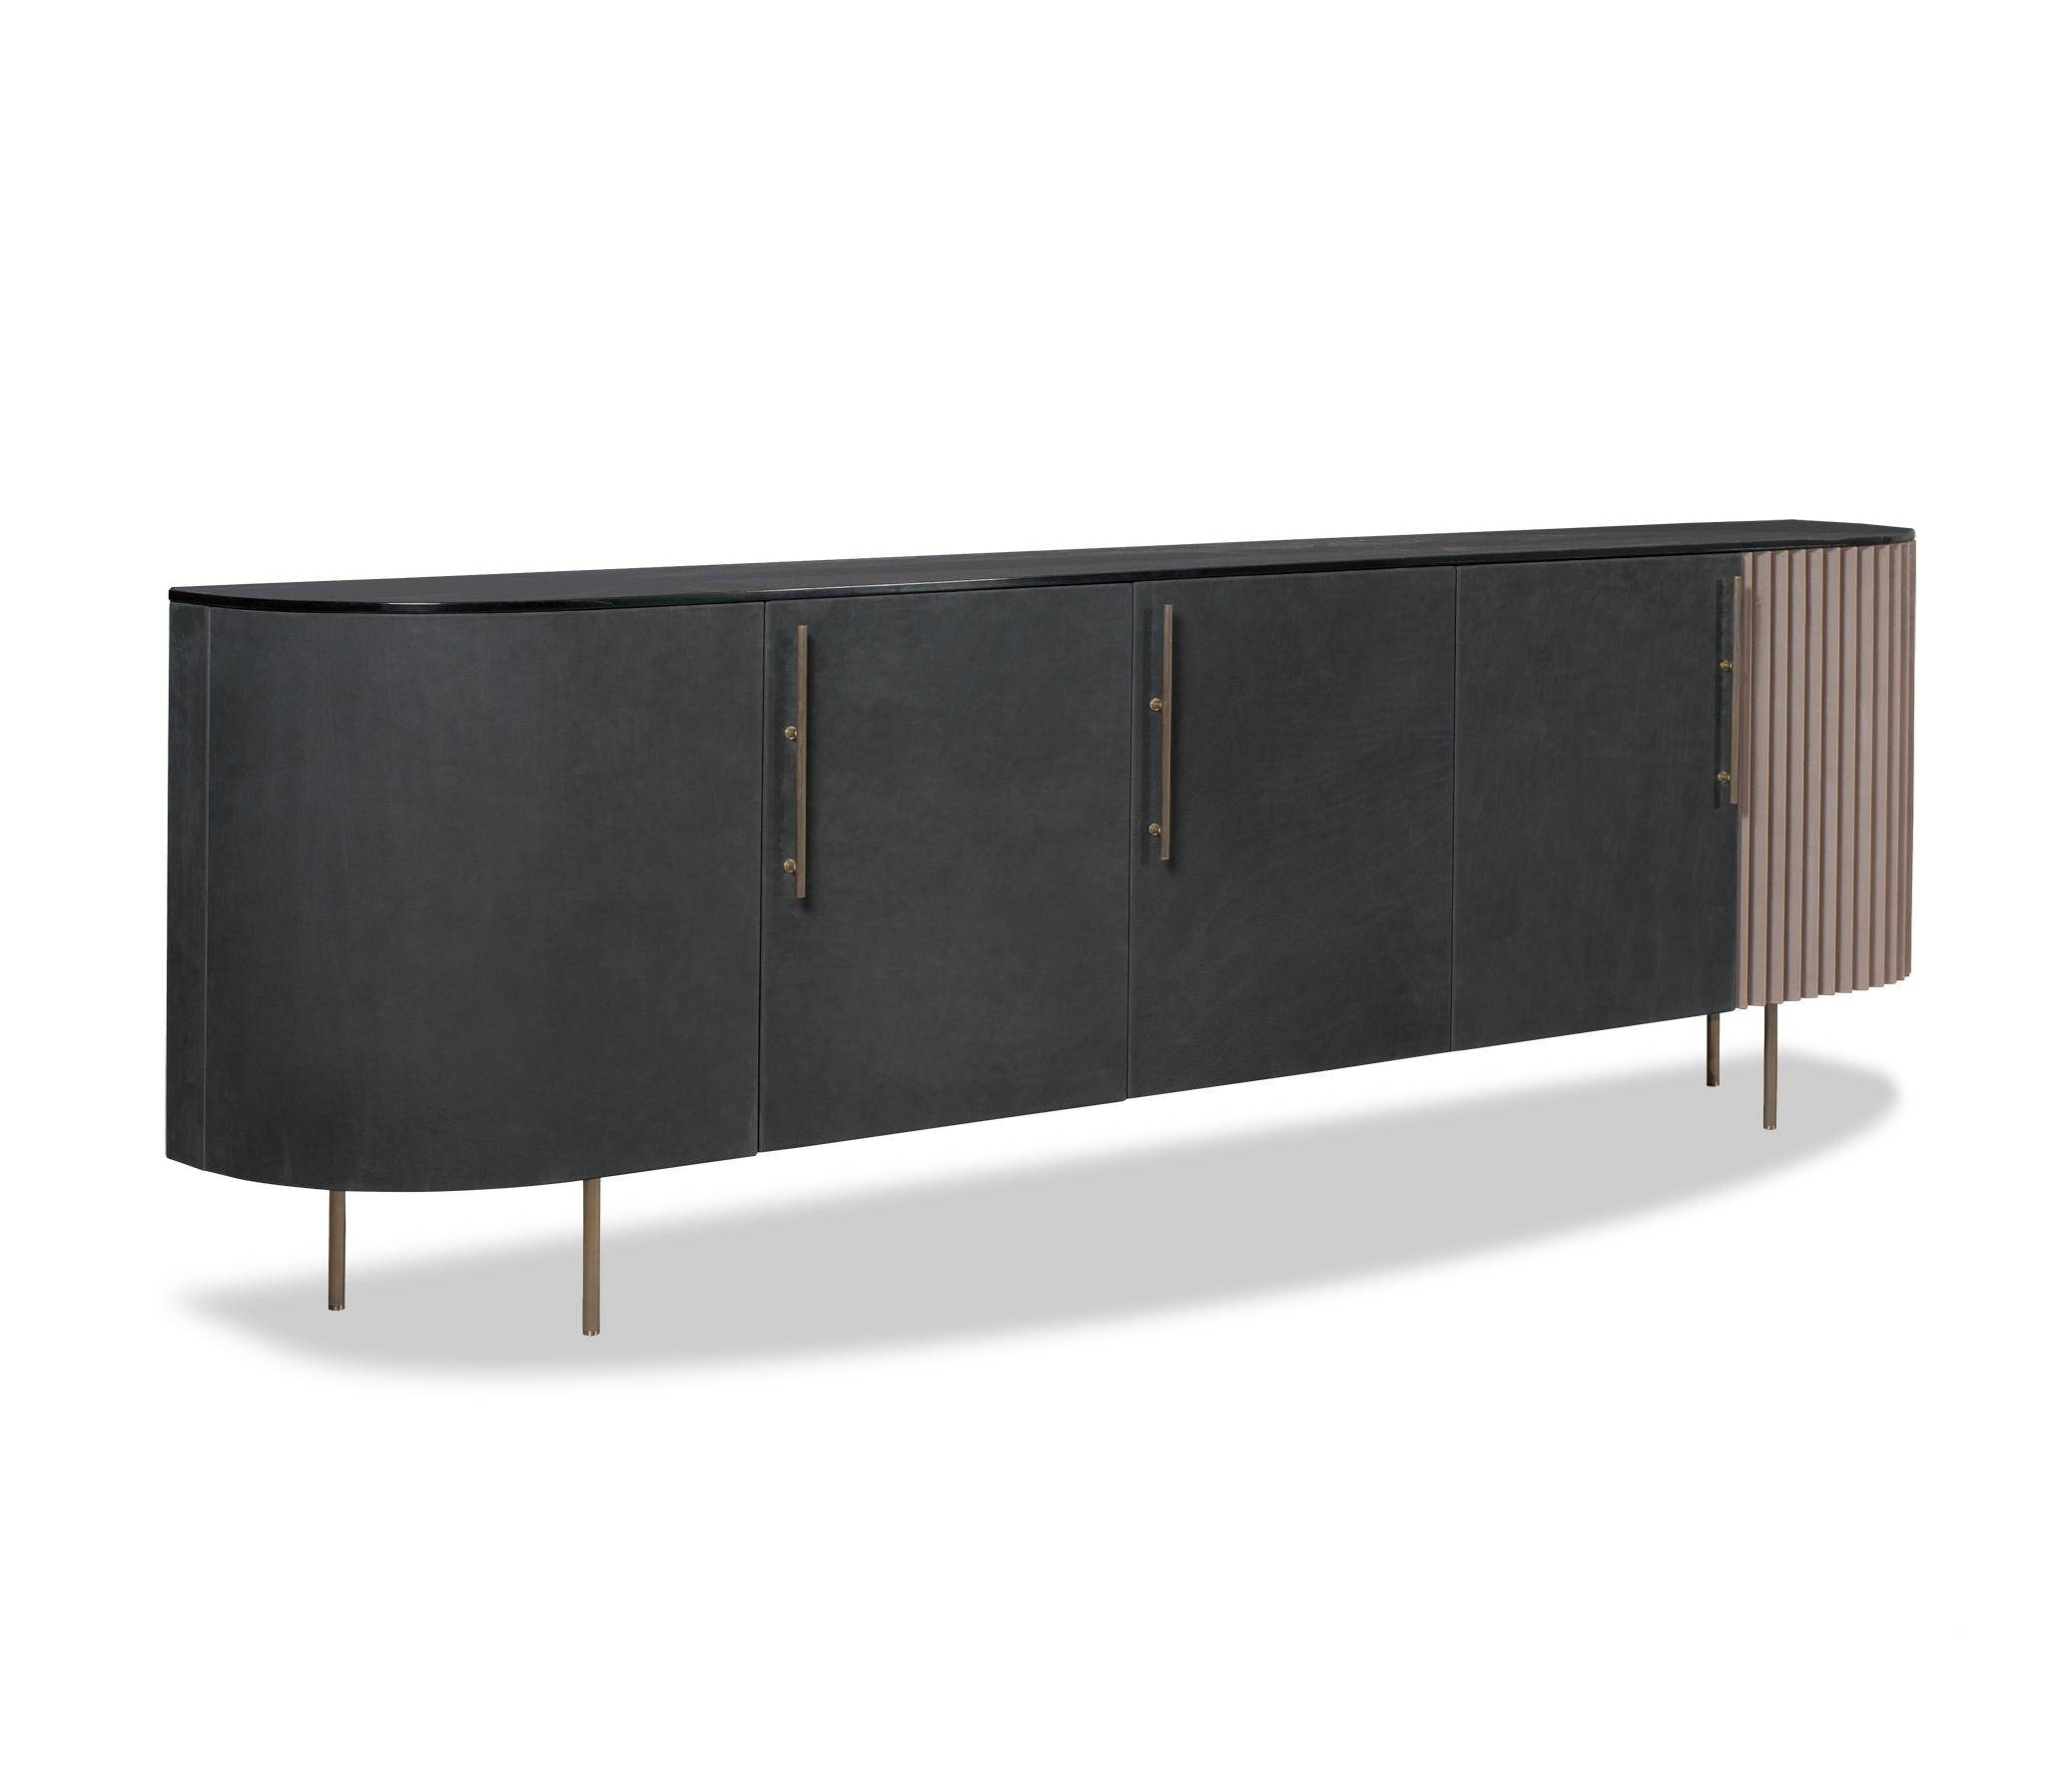 Plissé Low Cabinet – Sideboards From Baxter | Architonic Intended For Recent Small Low Sideboards (#12 of 15)